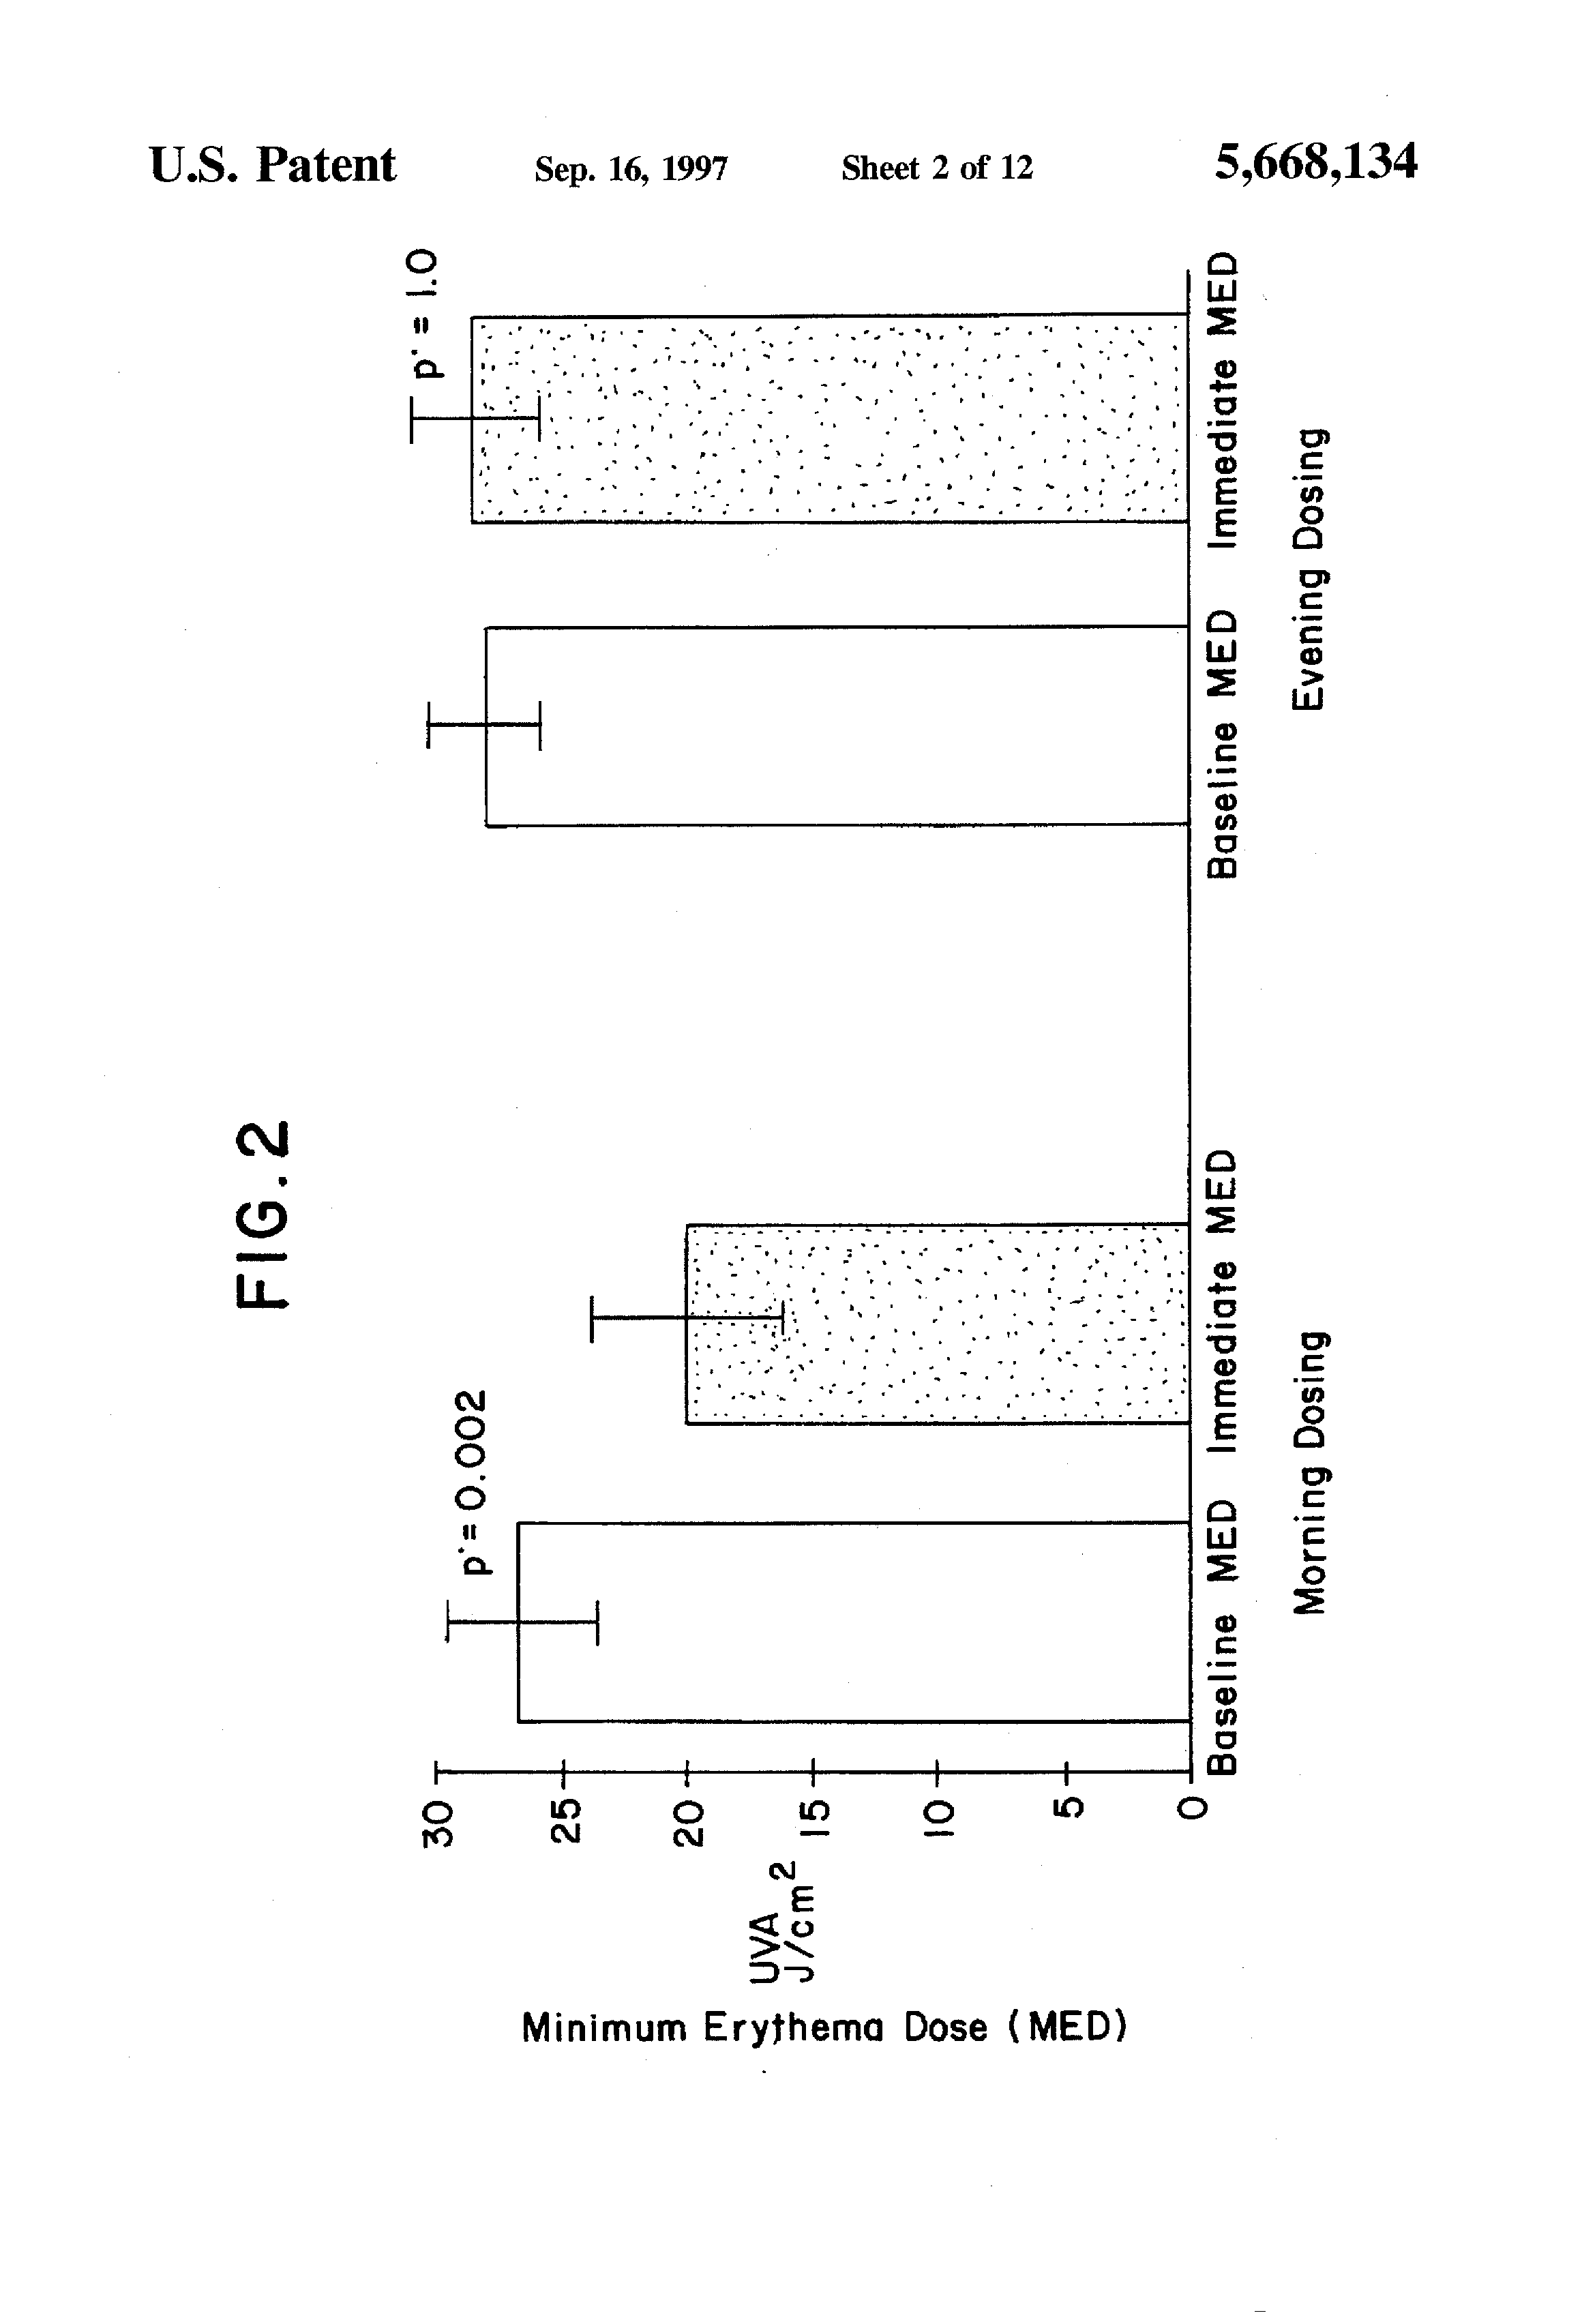 Capoten 25 mg dose.doc - Patent Drawing